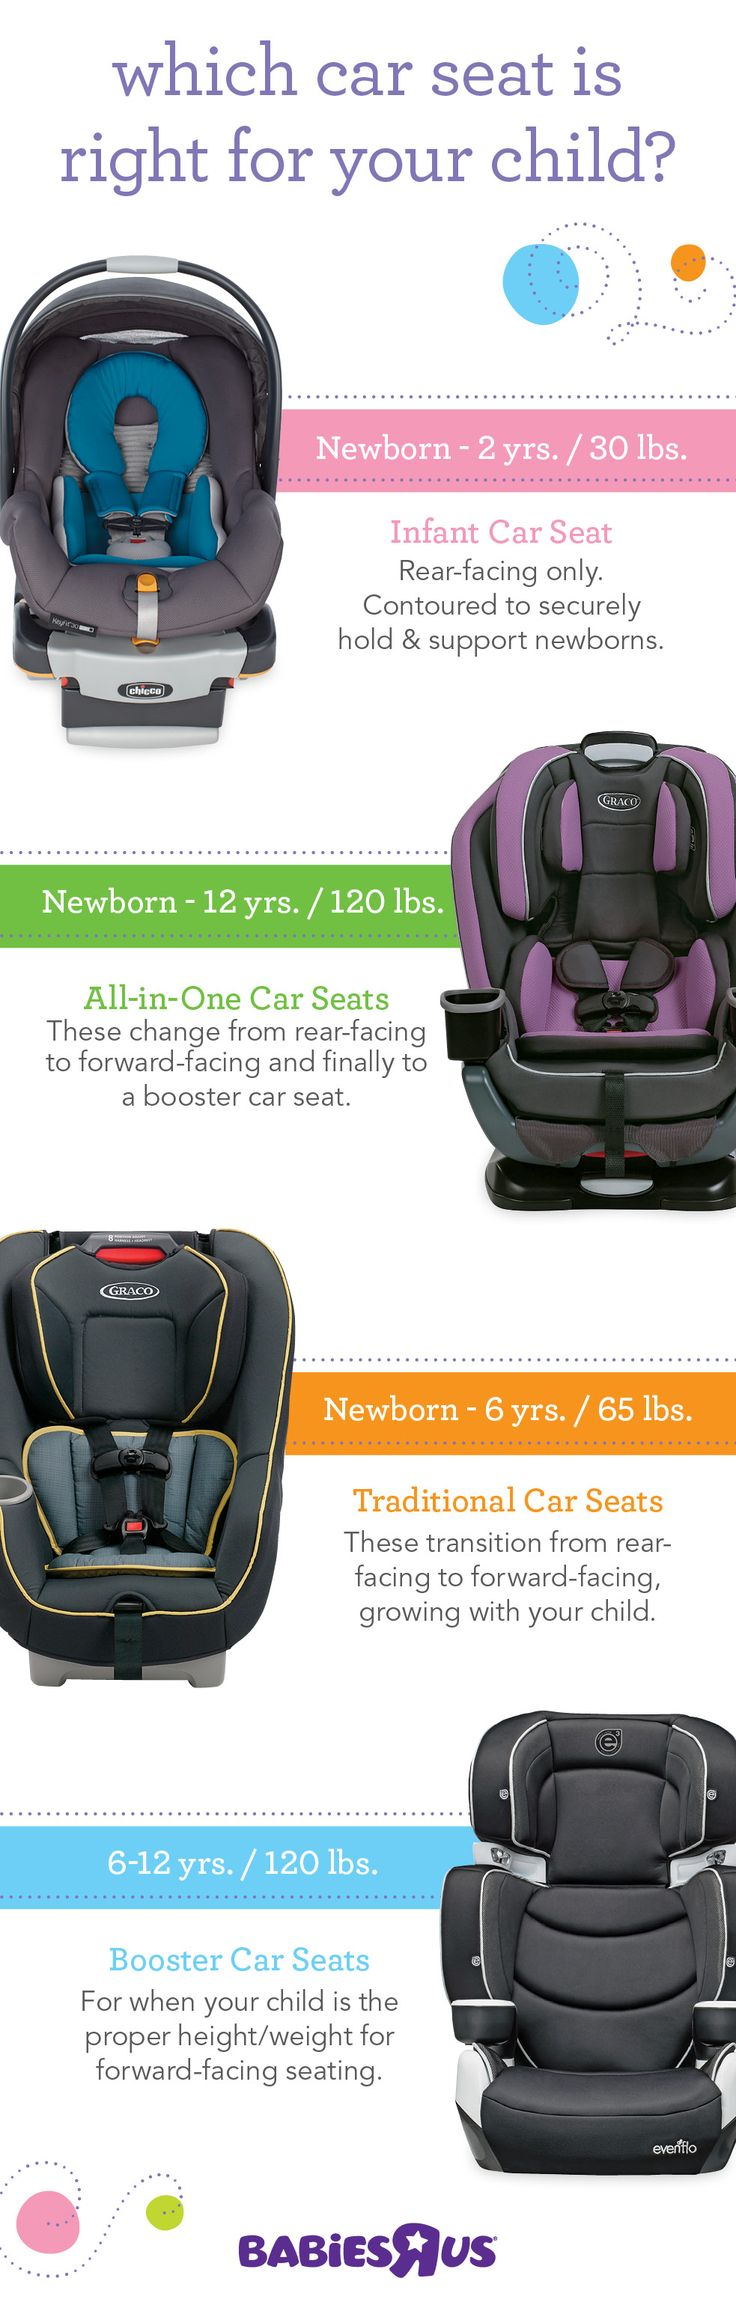 Which car seat should you get for your little road warrior? Visit Babiesrus.com/carseatfinder for an easy way to navigate through all the choices you have. Or come in store and get steered in the right direction from one of our helpful gear experts. Safe travels!